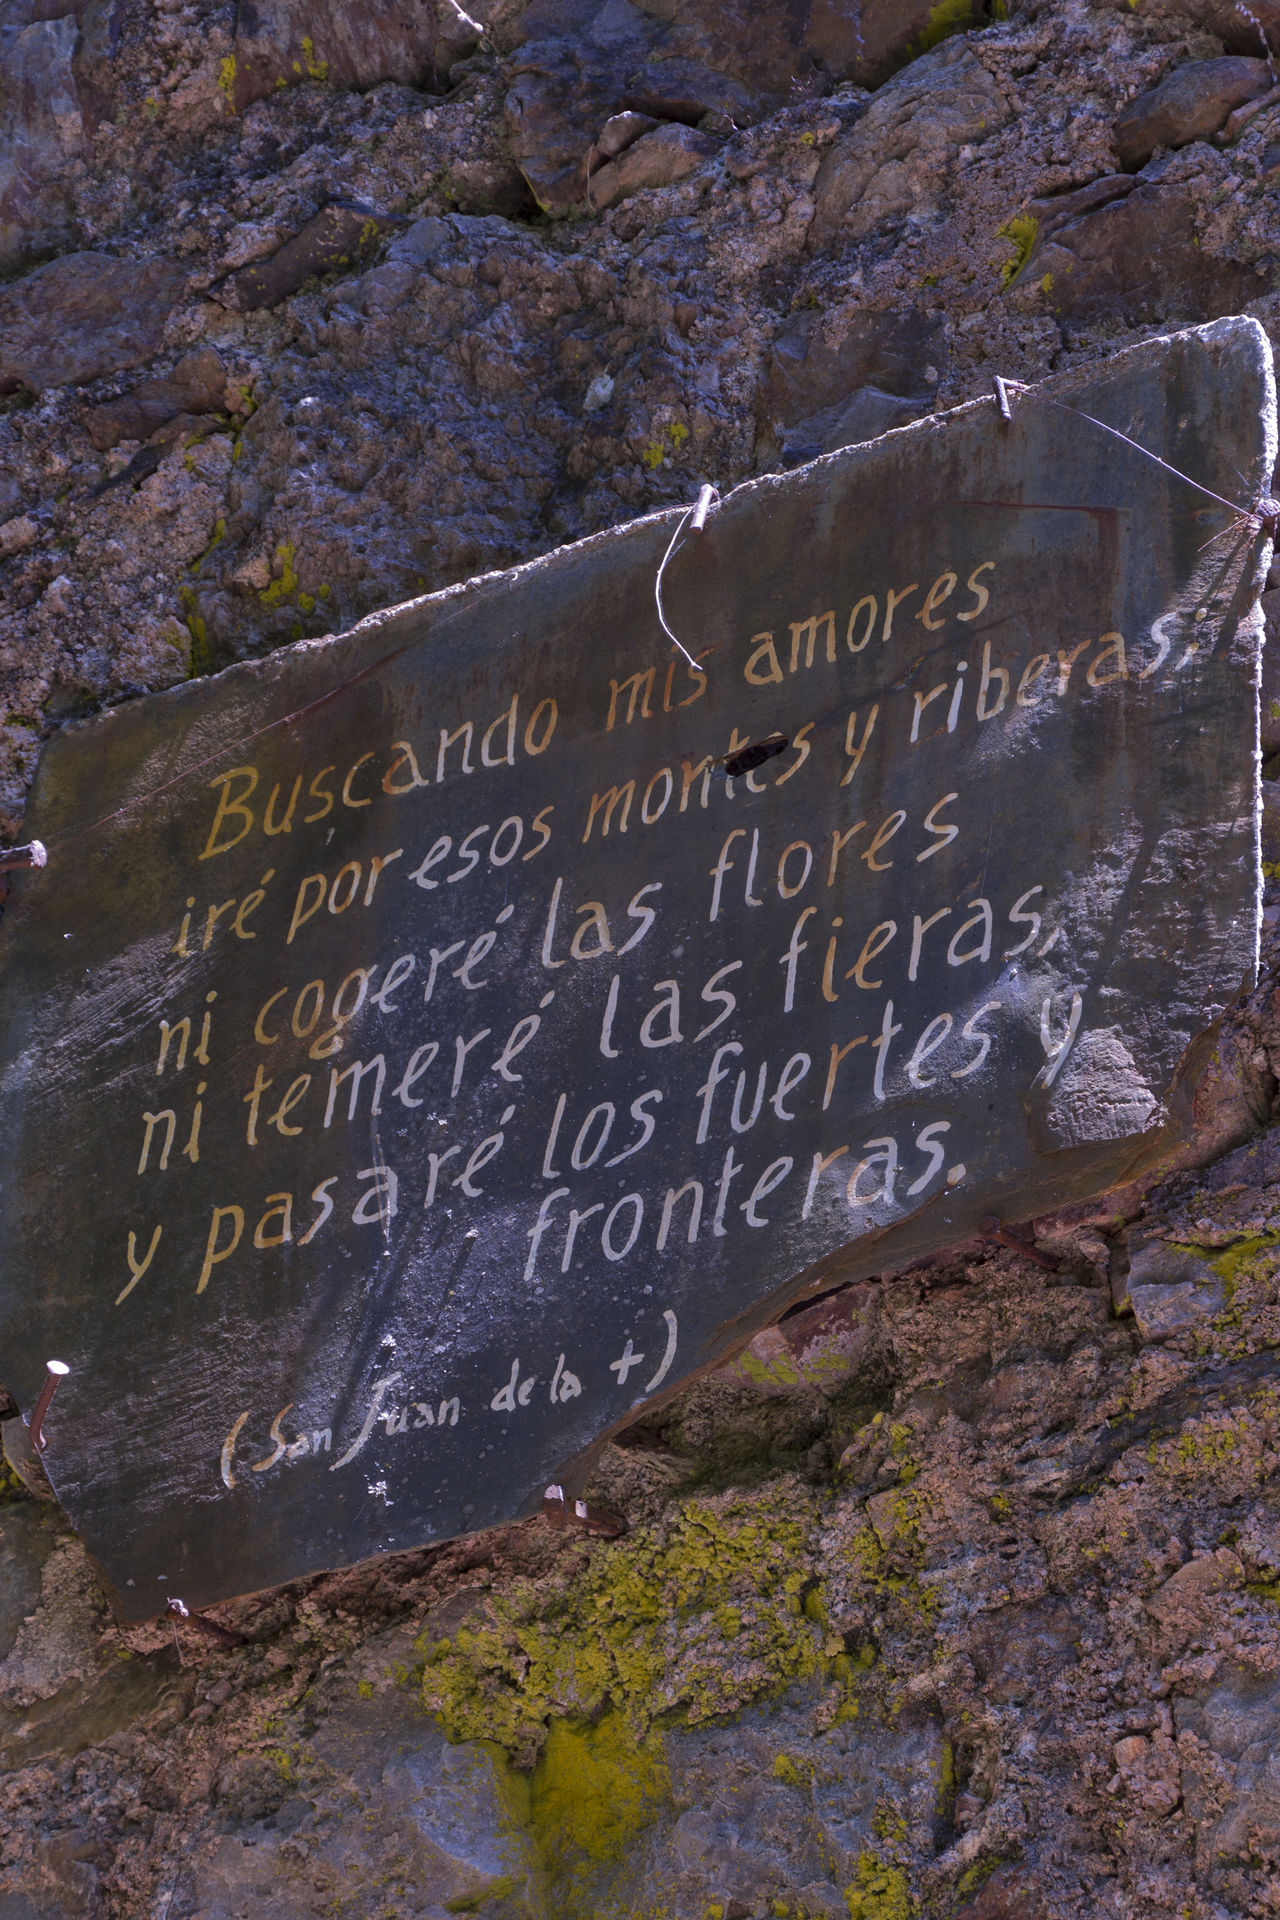 Beauty In Nature Close-up Day Monastery Mountain Nature No People Non-urban Scene Outdoors Peace Peace And Quiet Poem Poetry Rock Rock - Object Stone Wall Text Tranquility Western Script San Juan De La Cruz Verse Verses Tile Wall Stone